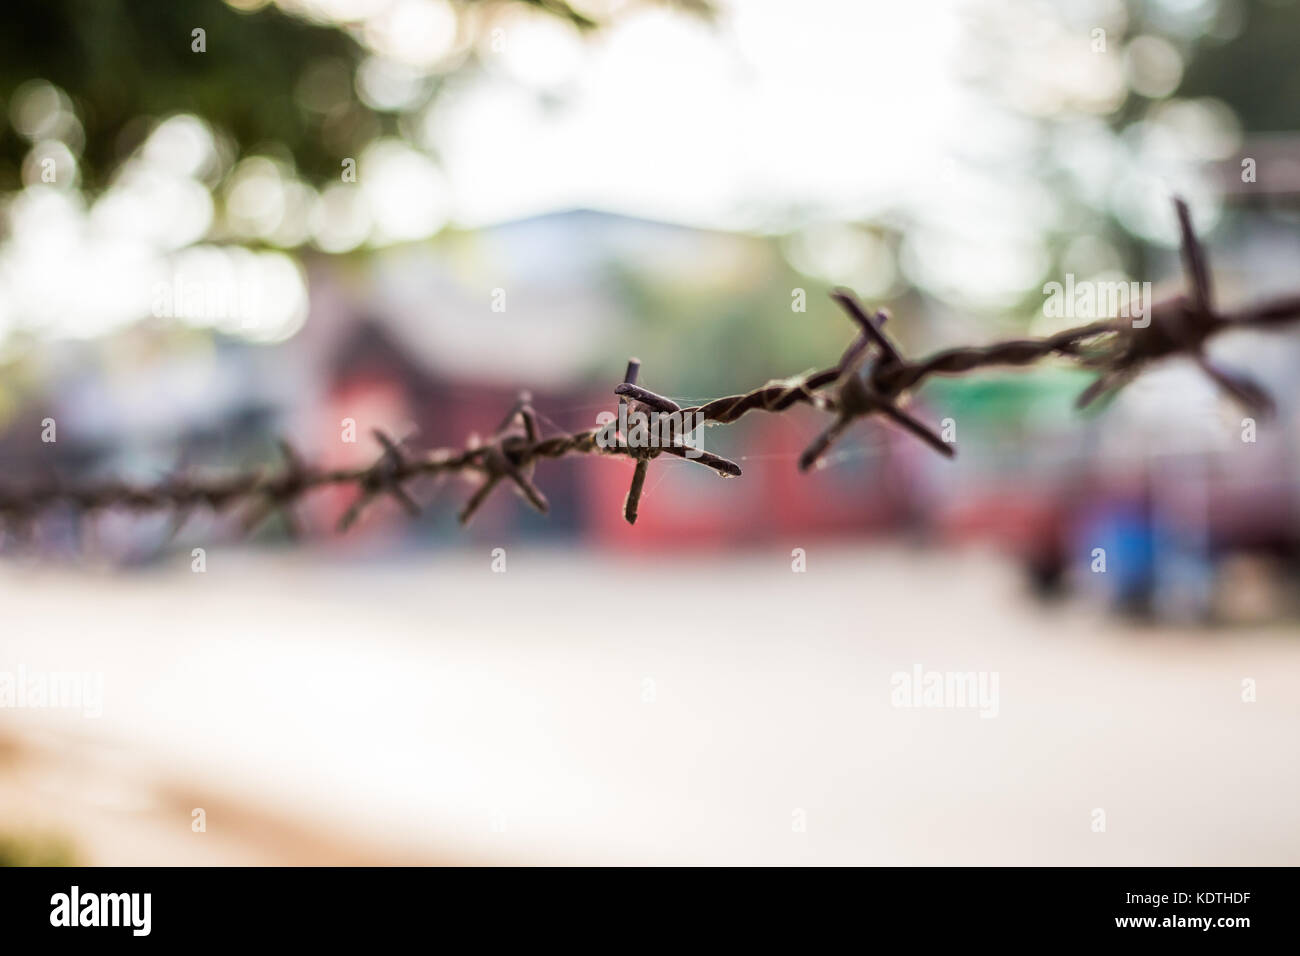 Barbed wire against green background Stock Photo